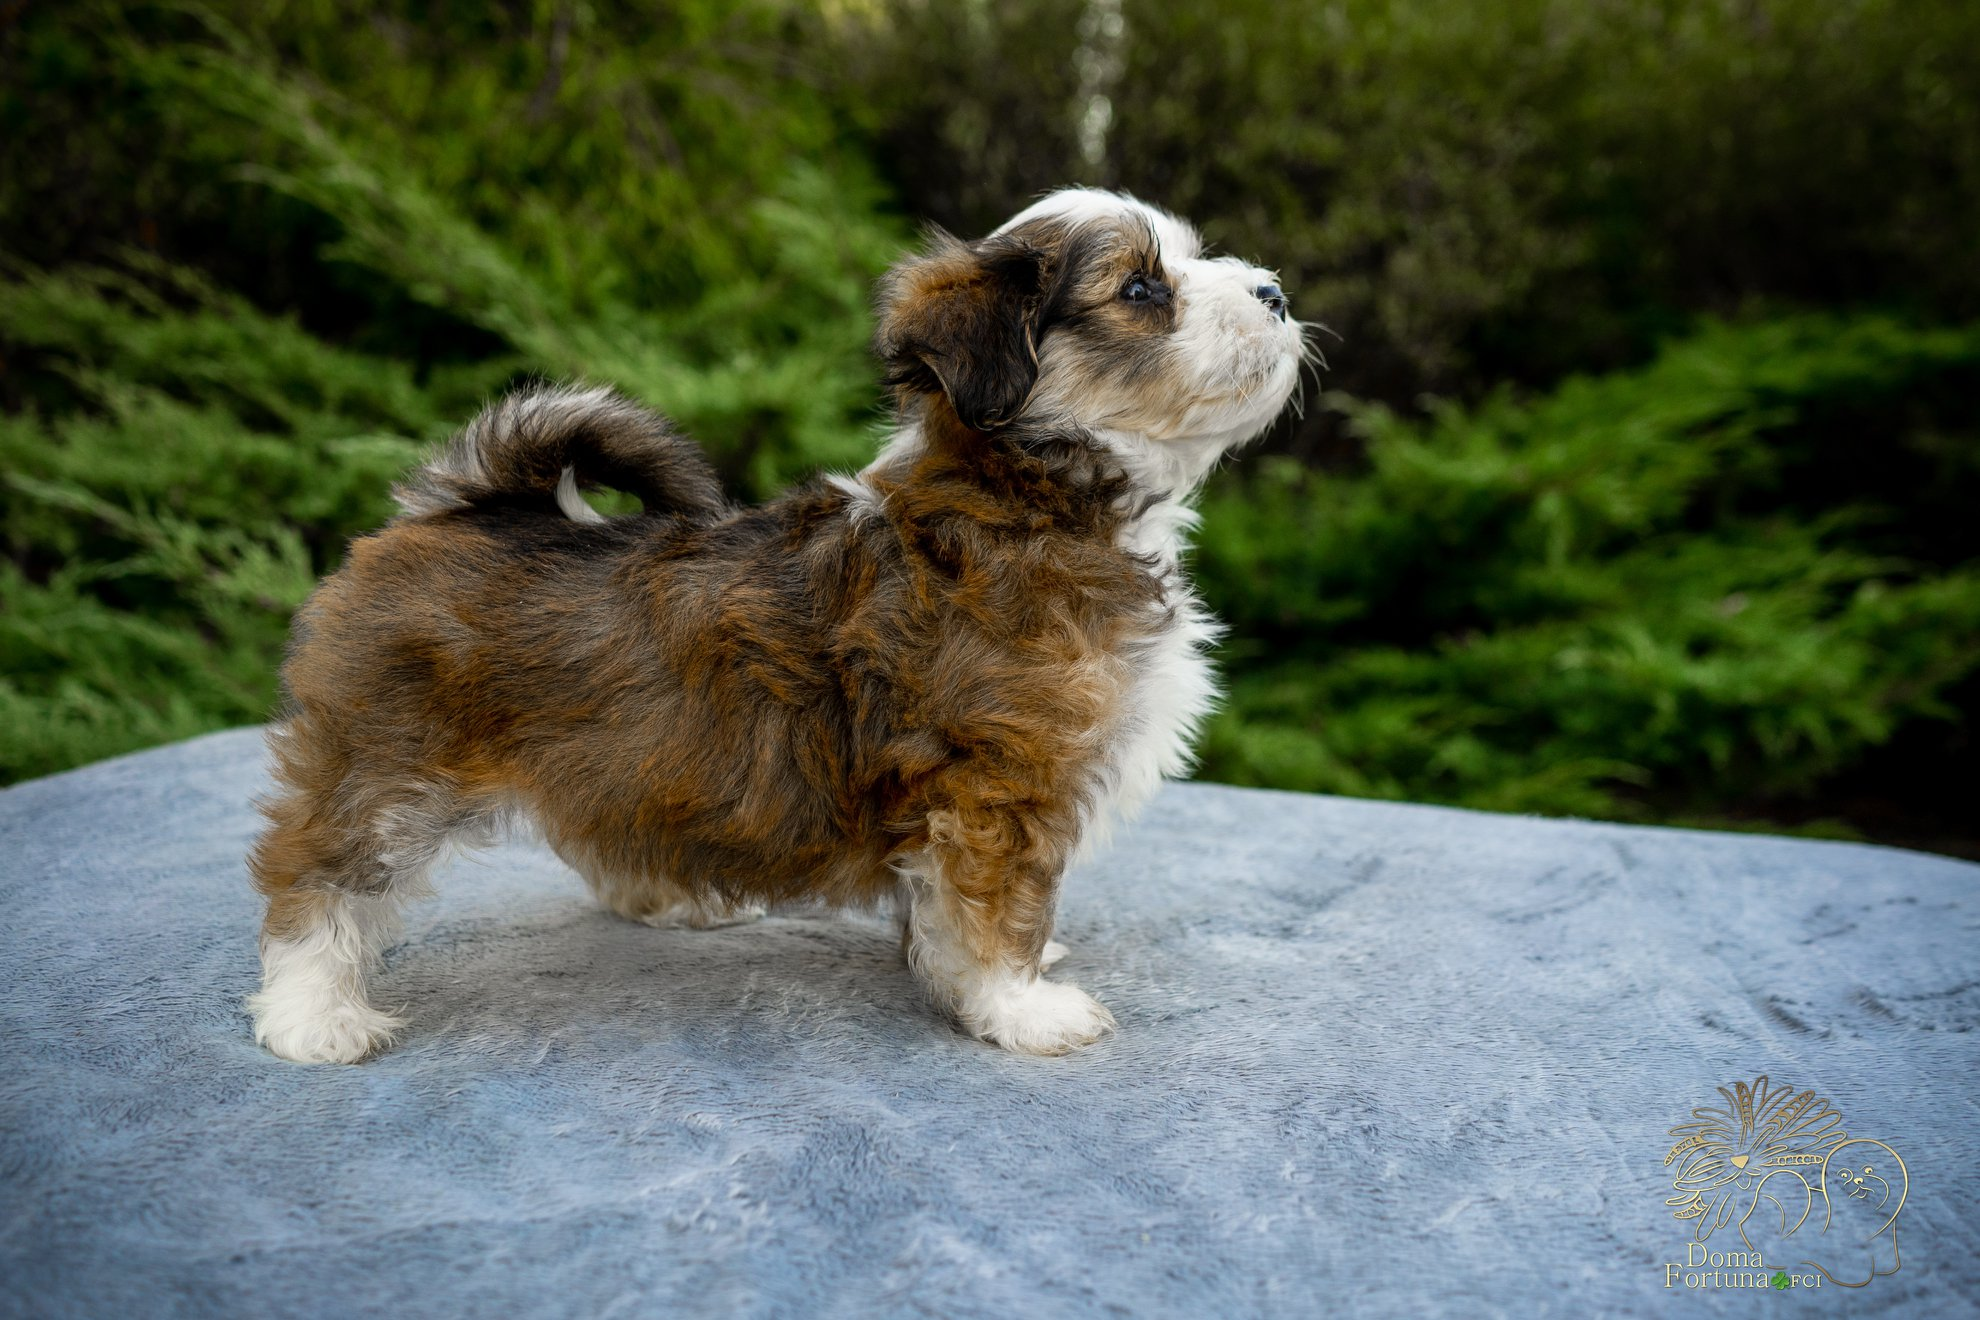 Very prominsing havanese puppy for show Doma fortuna FCI litter M